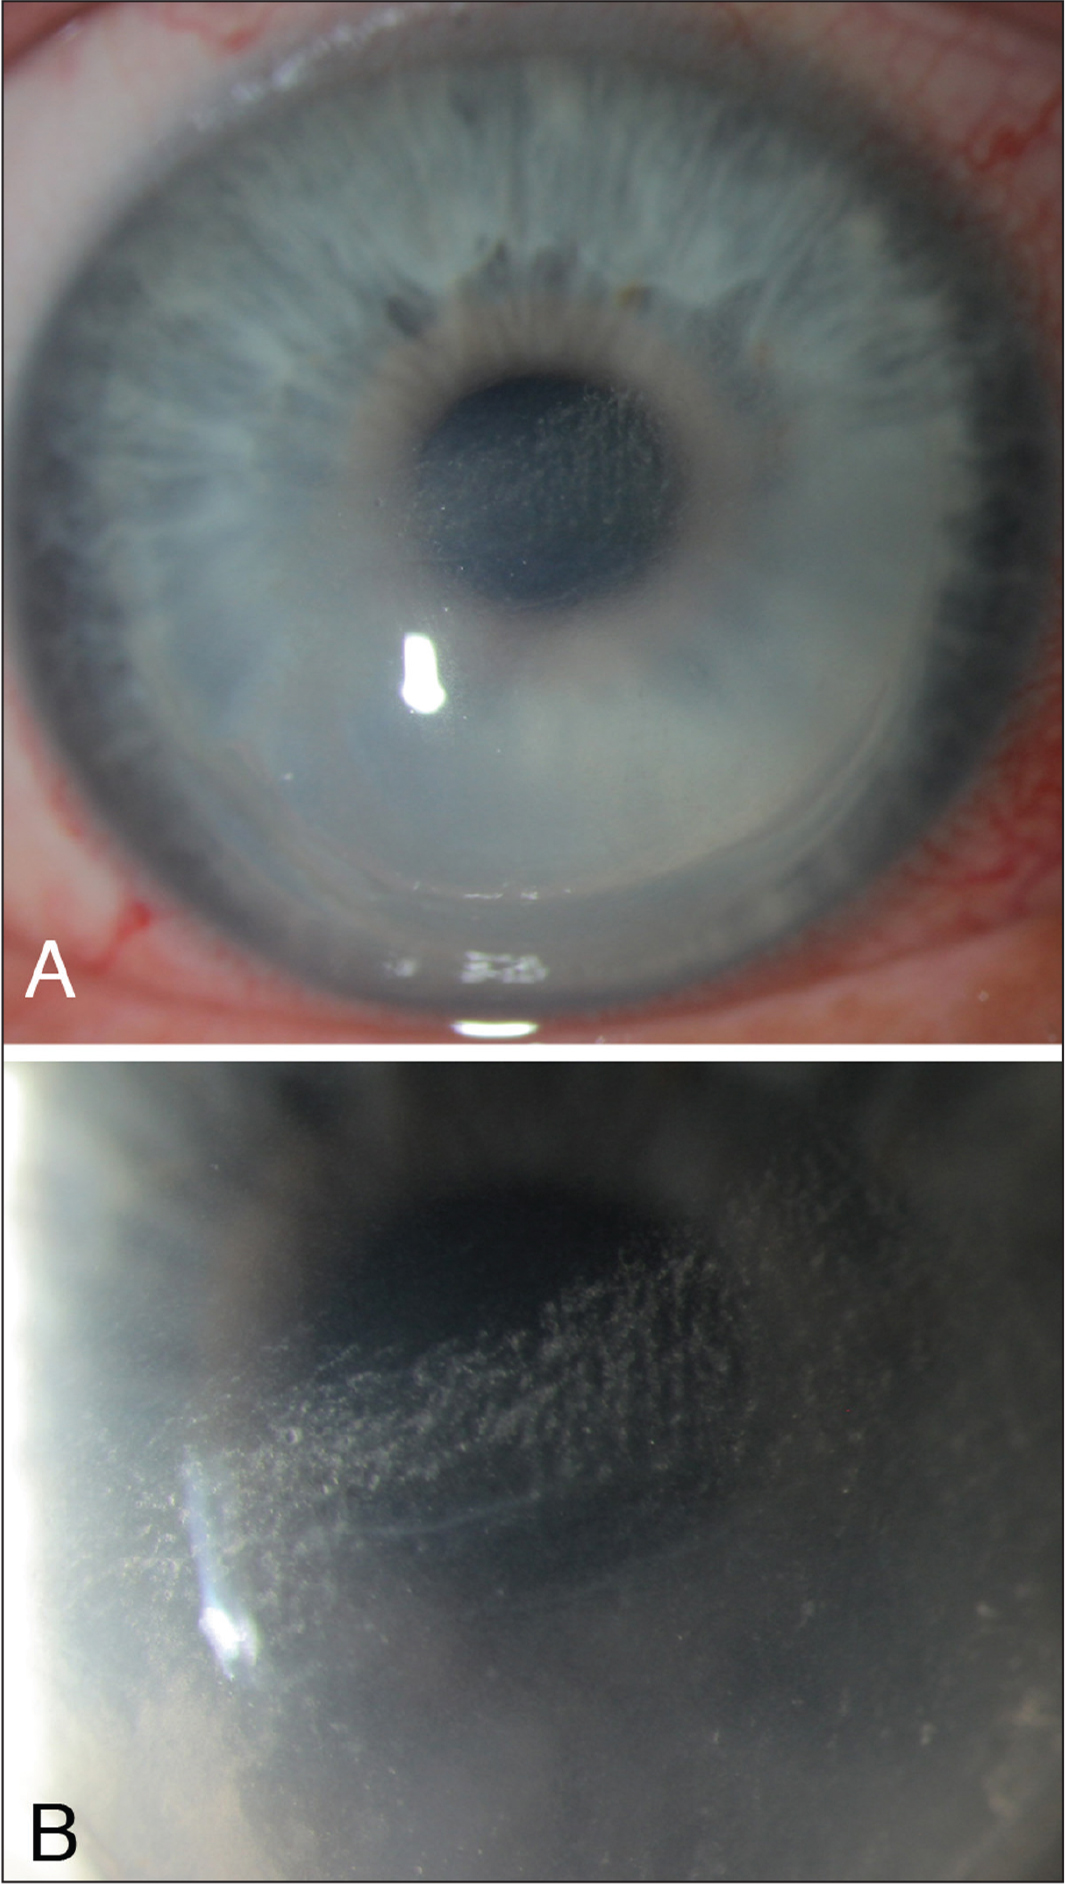 Slit-lamp photographs of stage III diffuse lamellar keratitis that occurred many years after laser in situ keratomileusis in response to epithelial trauma (original magnification [A] ×20, and [B] ×40).